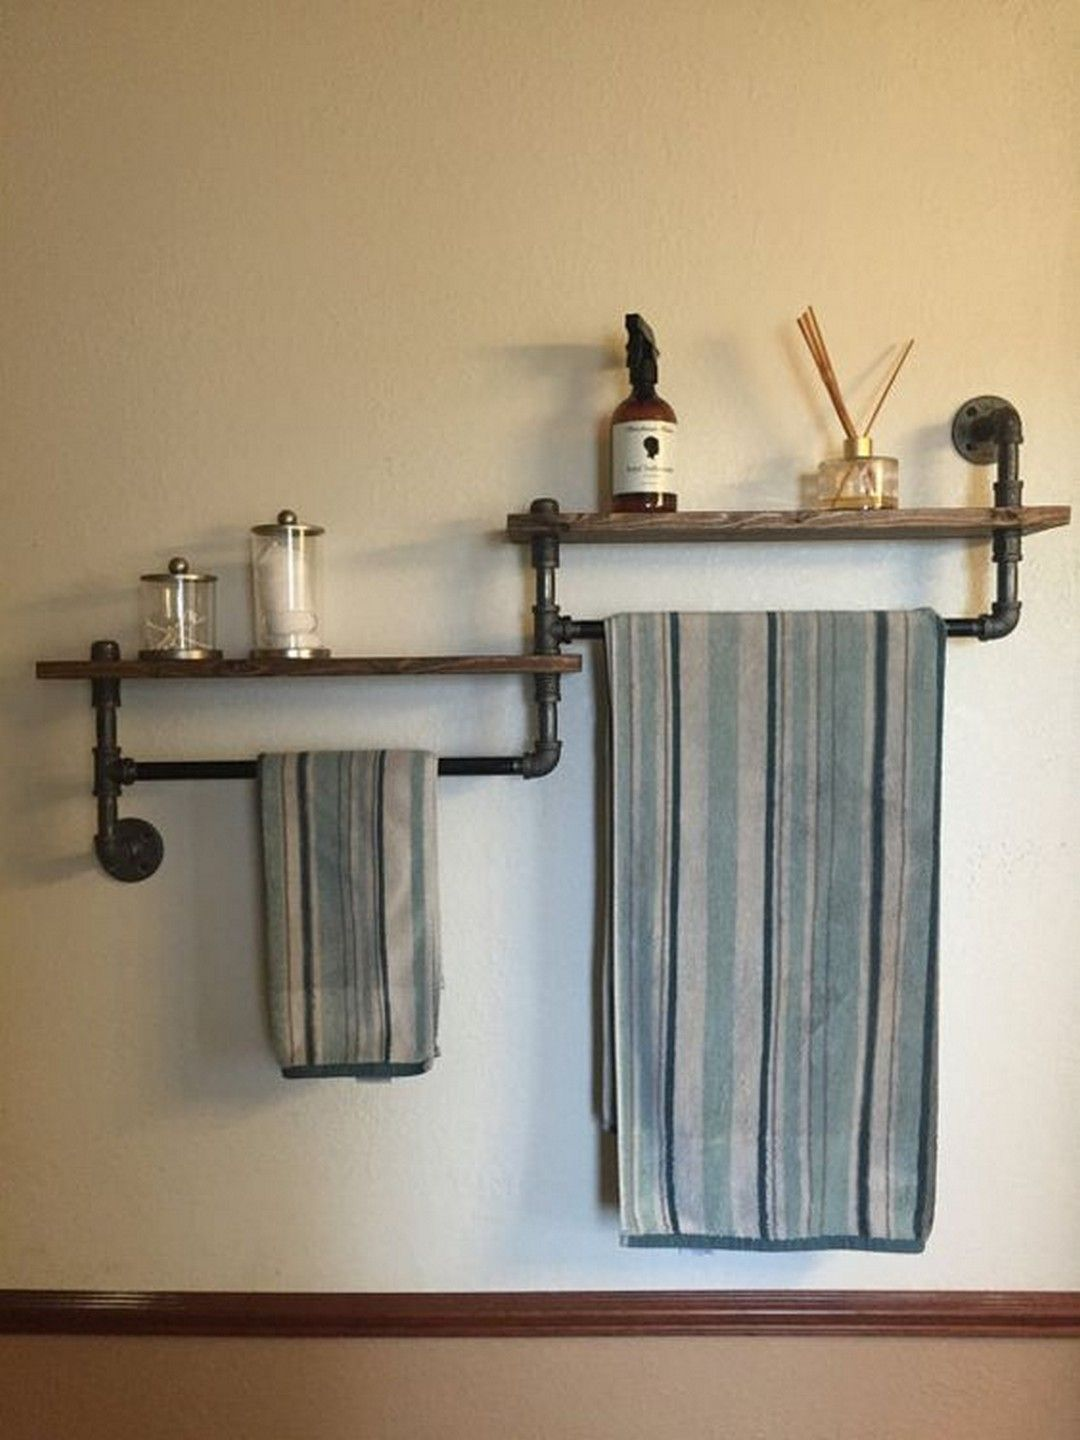 Towel Rack Decoration Ideas to Match your